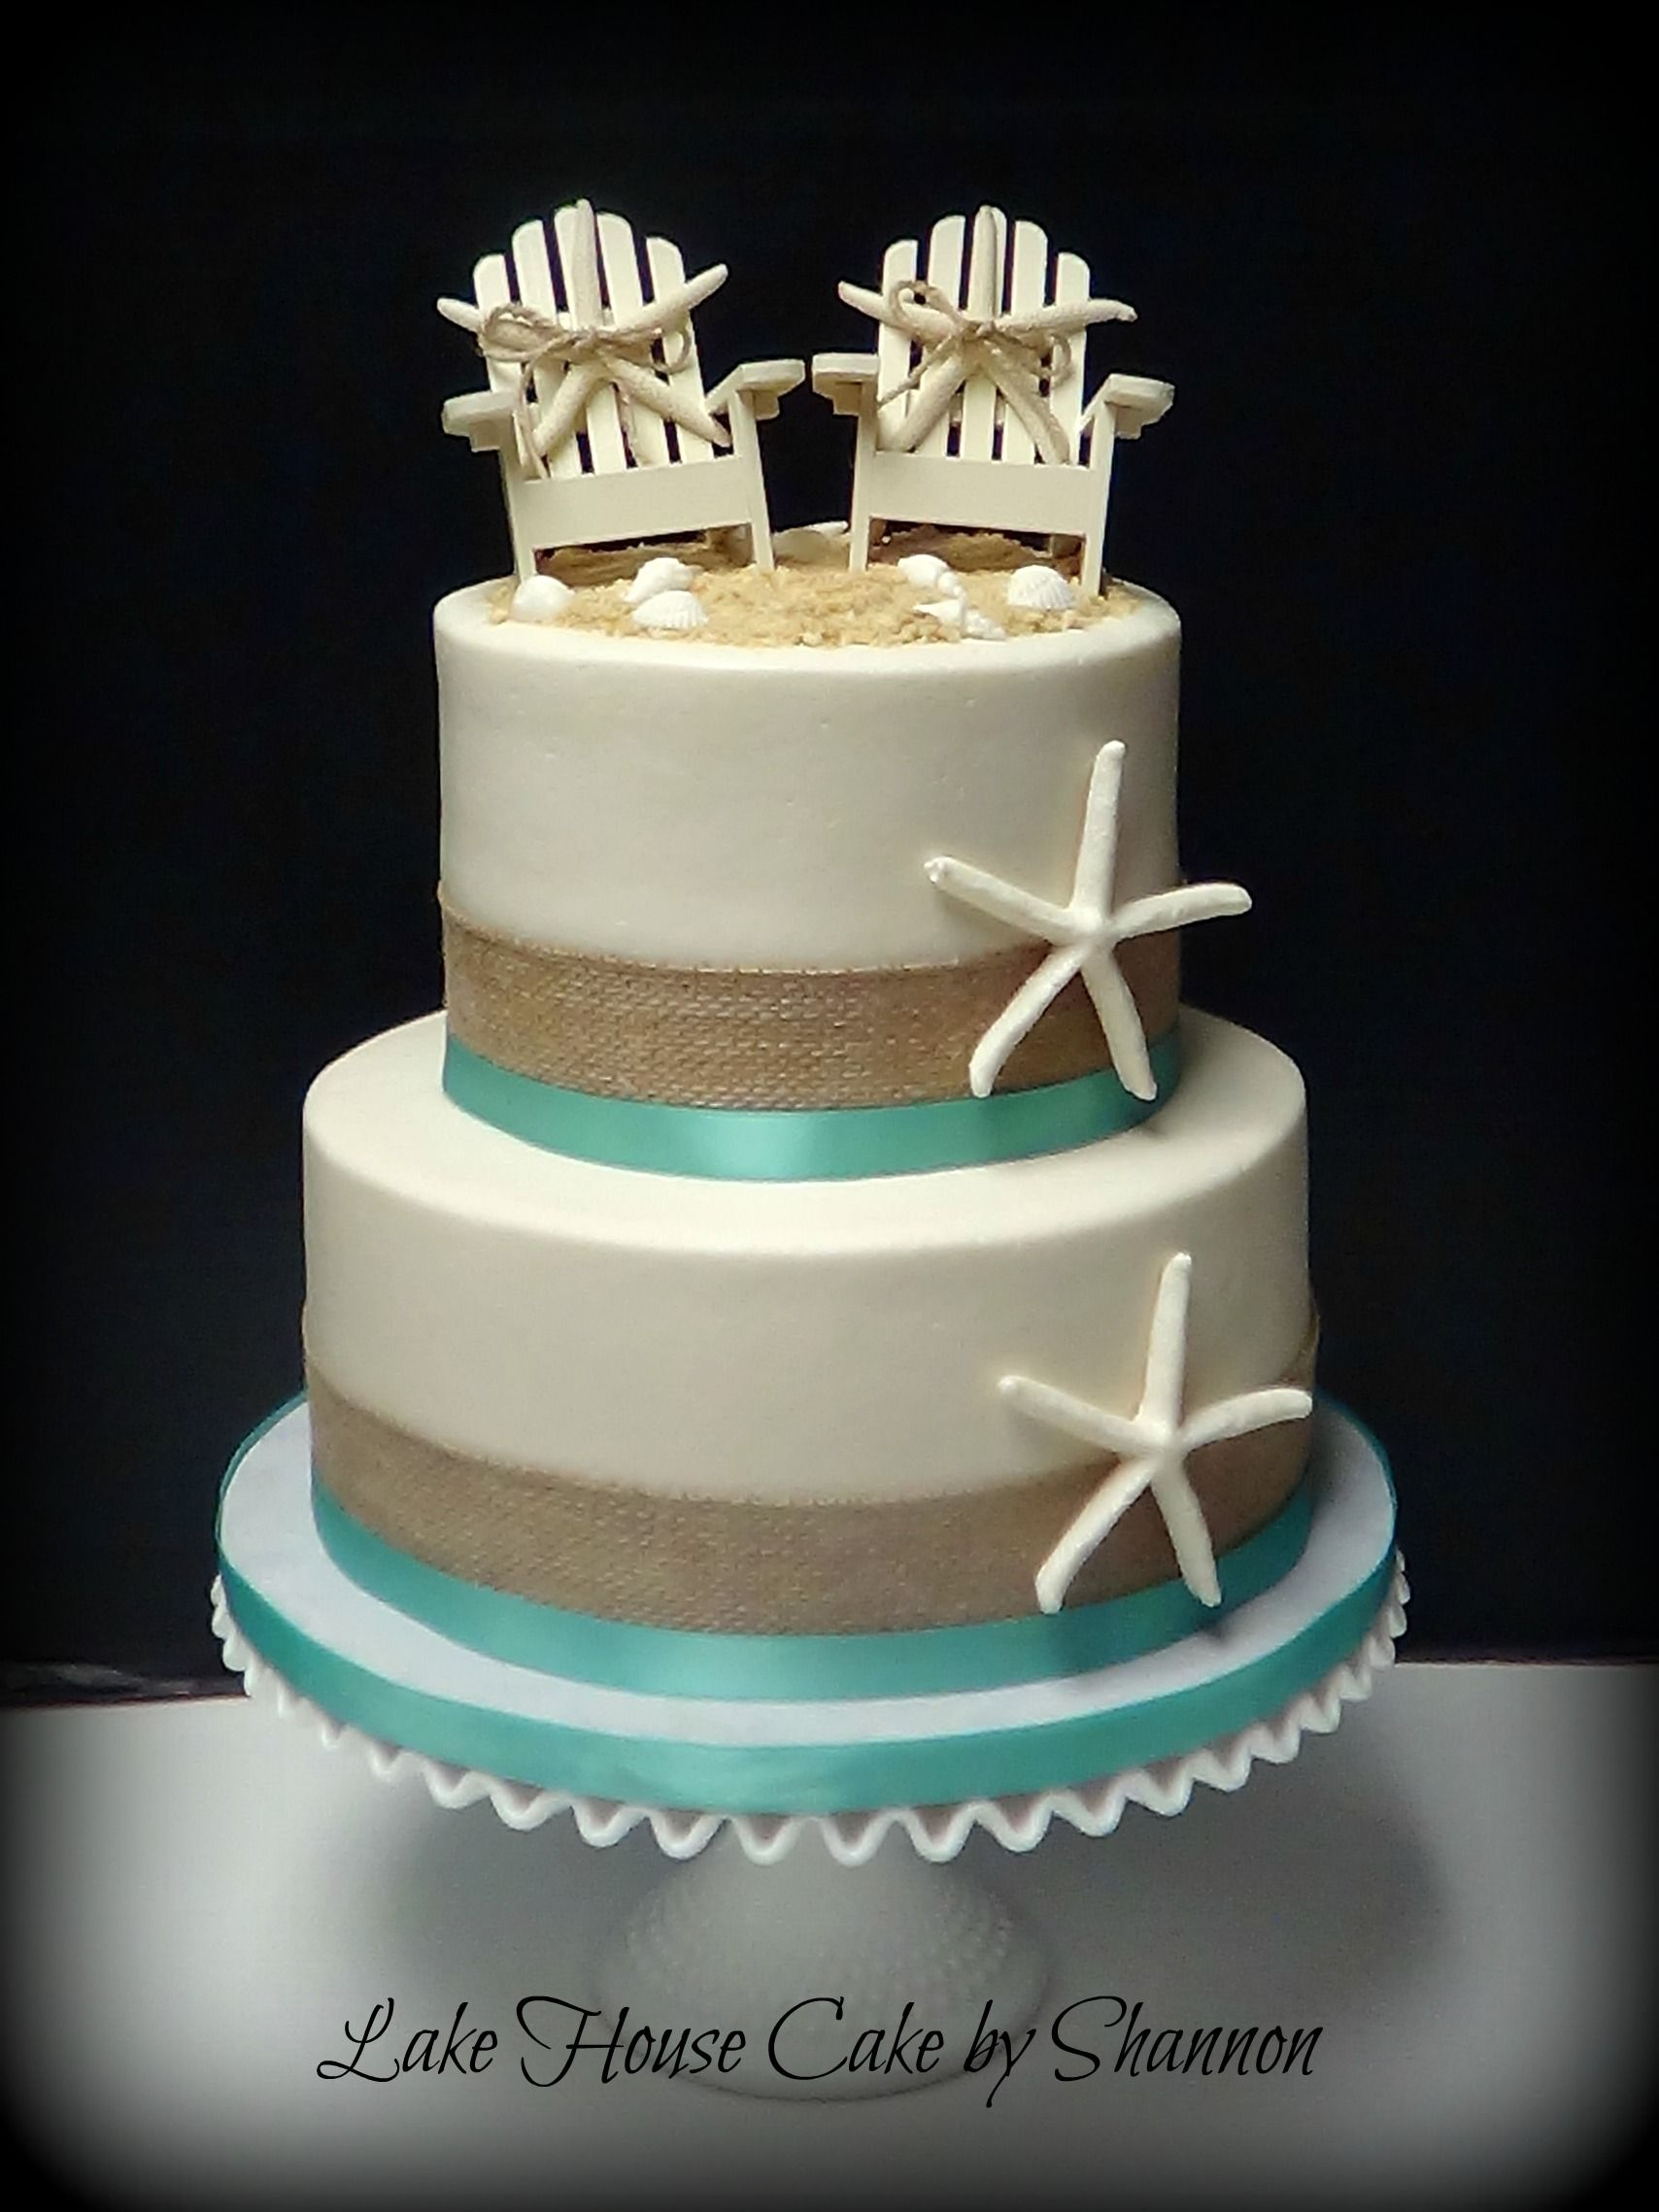 Wedding cake beach themed burlap buttercream starfish beach wedding cake beach themed burlap buttercream starfish beach chairs seashells sea junglespirit Choice Image